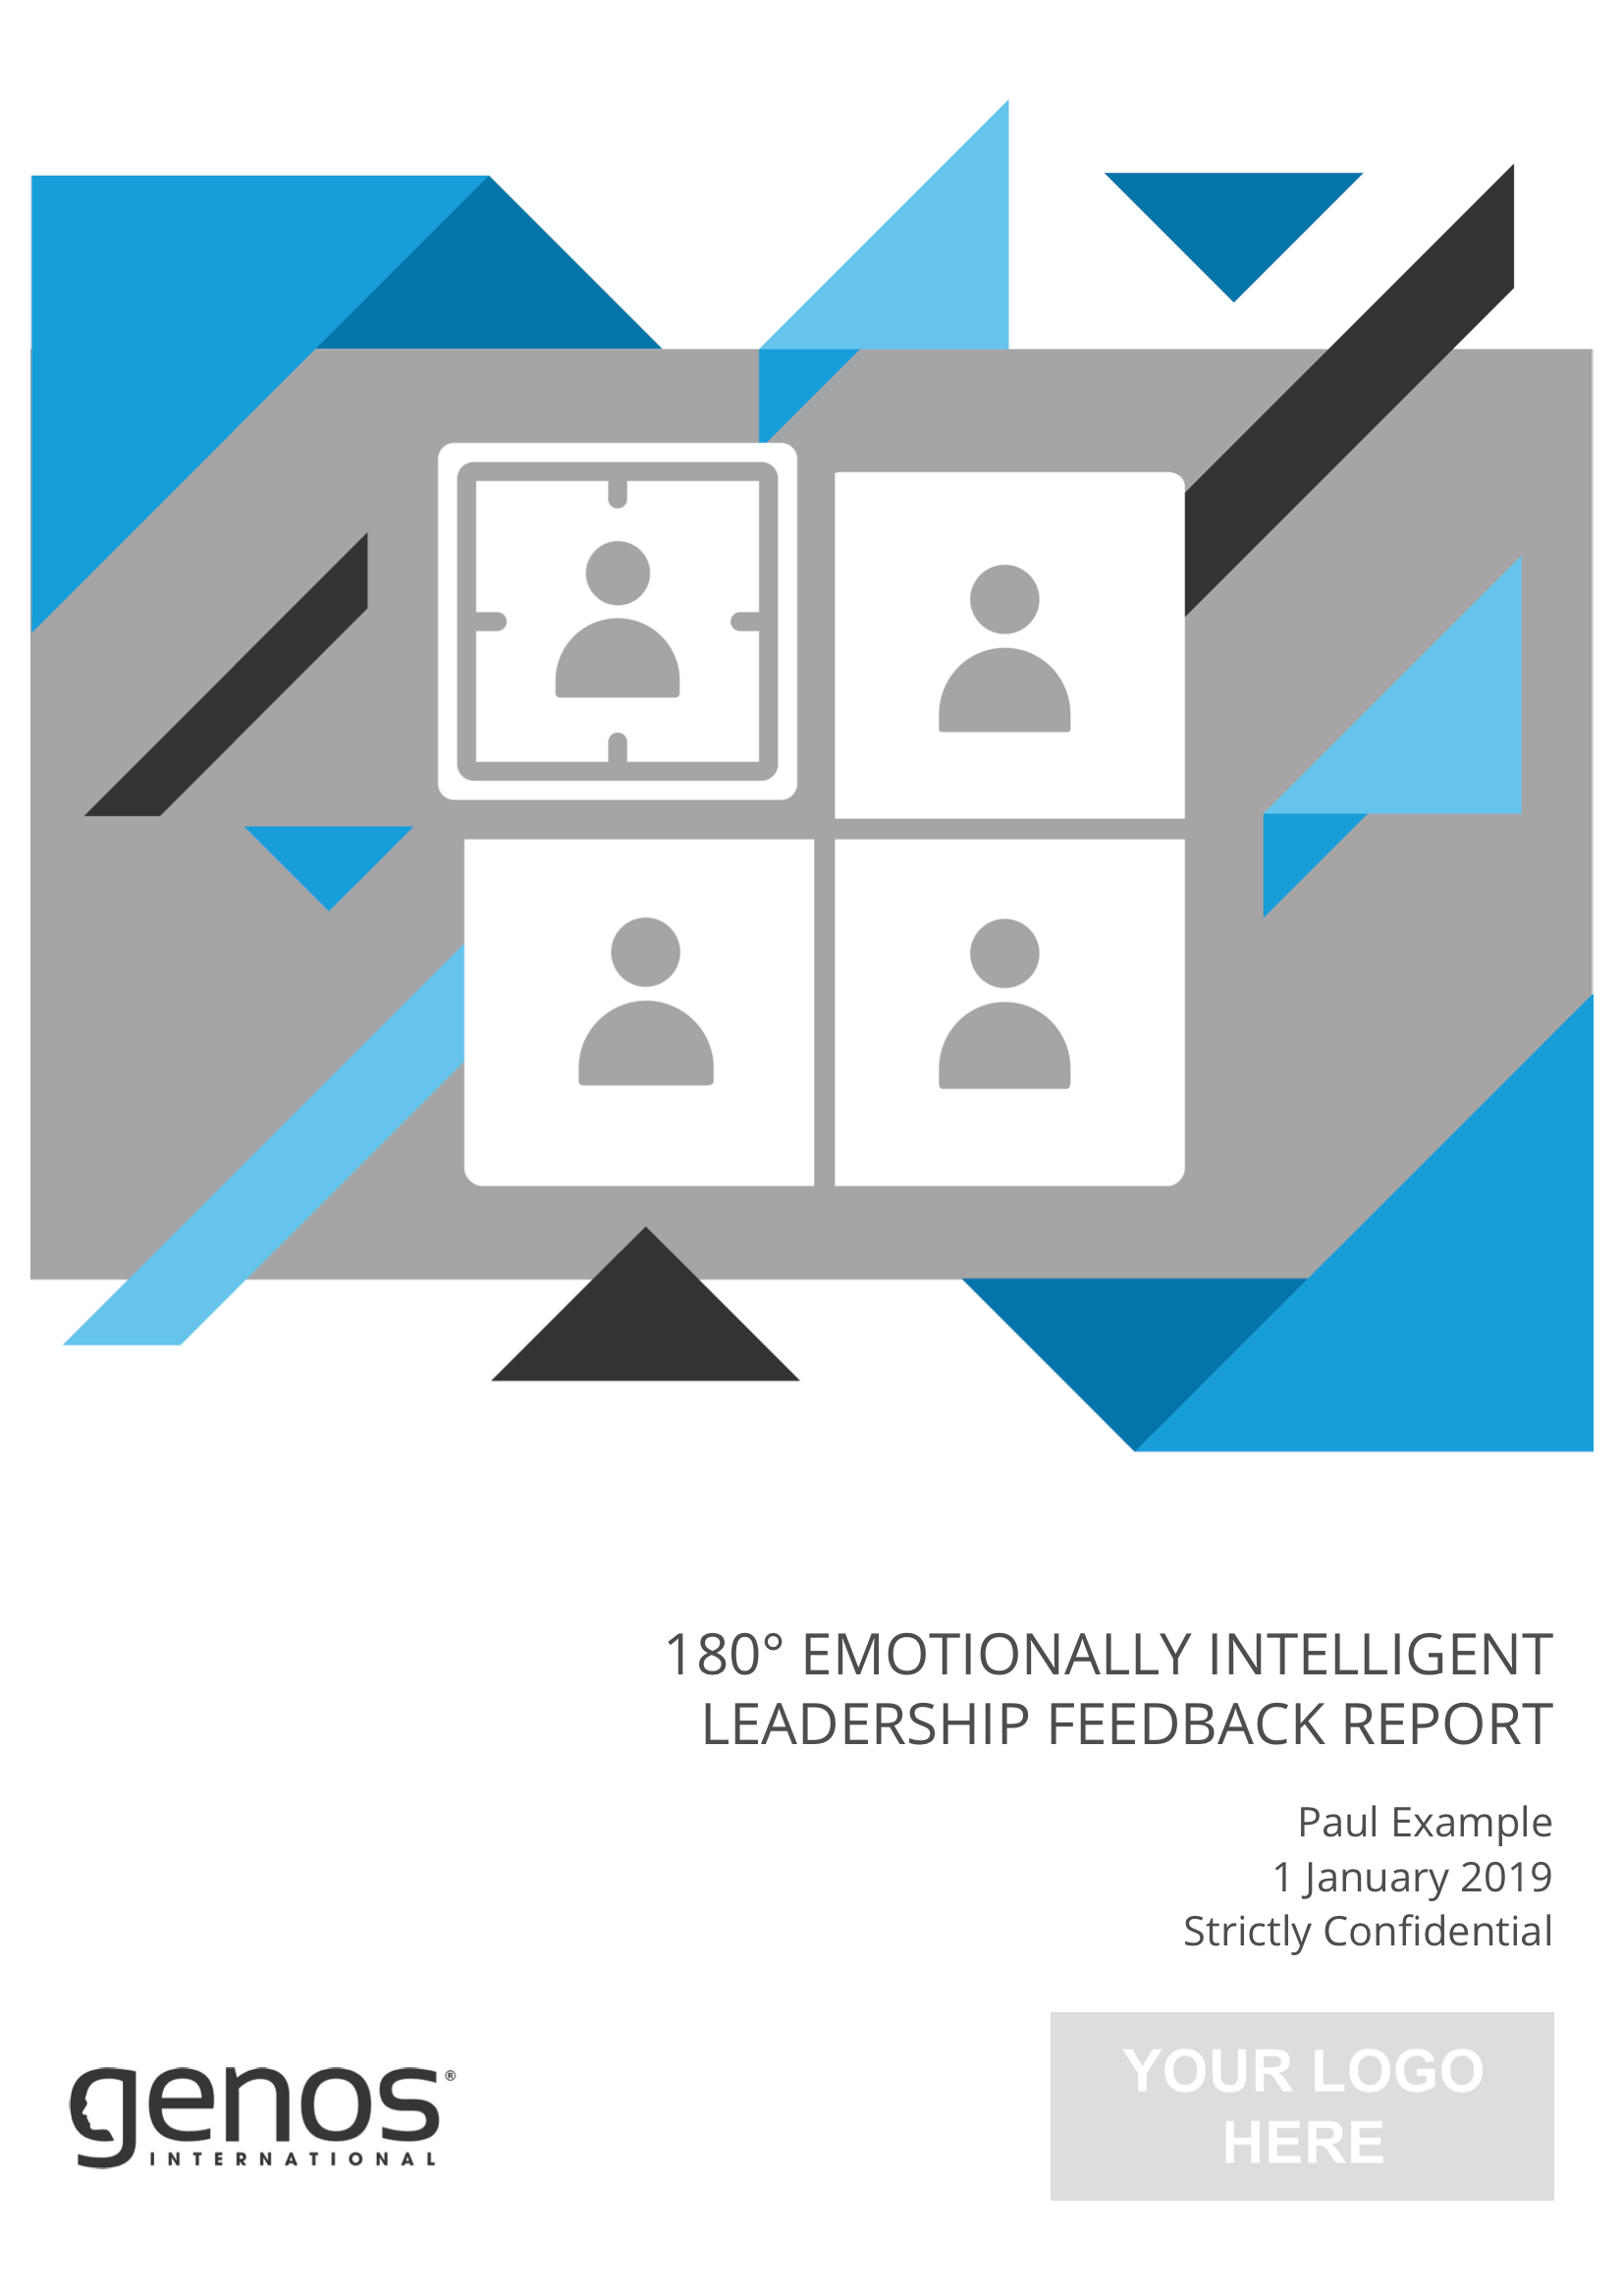 180 Leadership Feedback Report